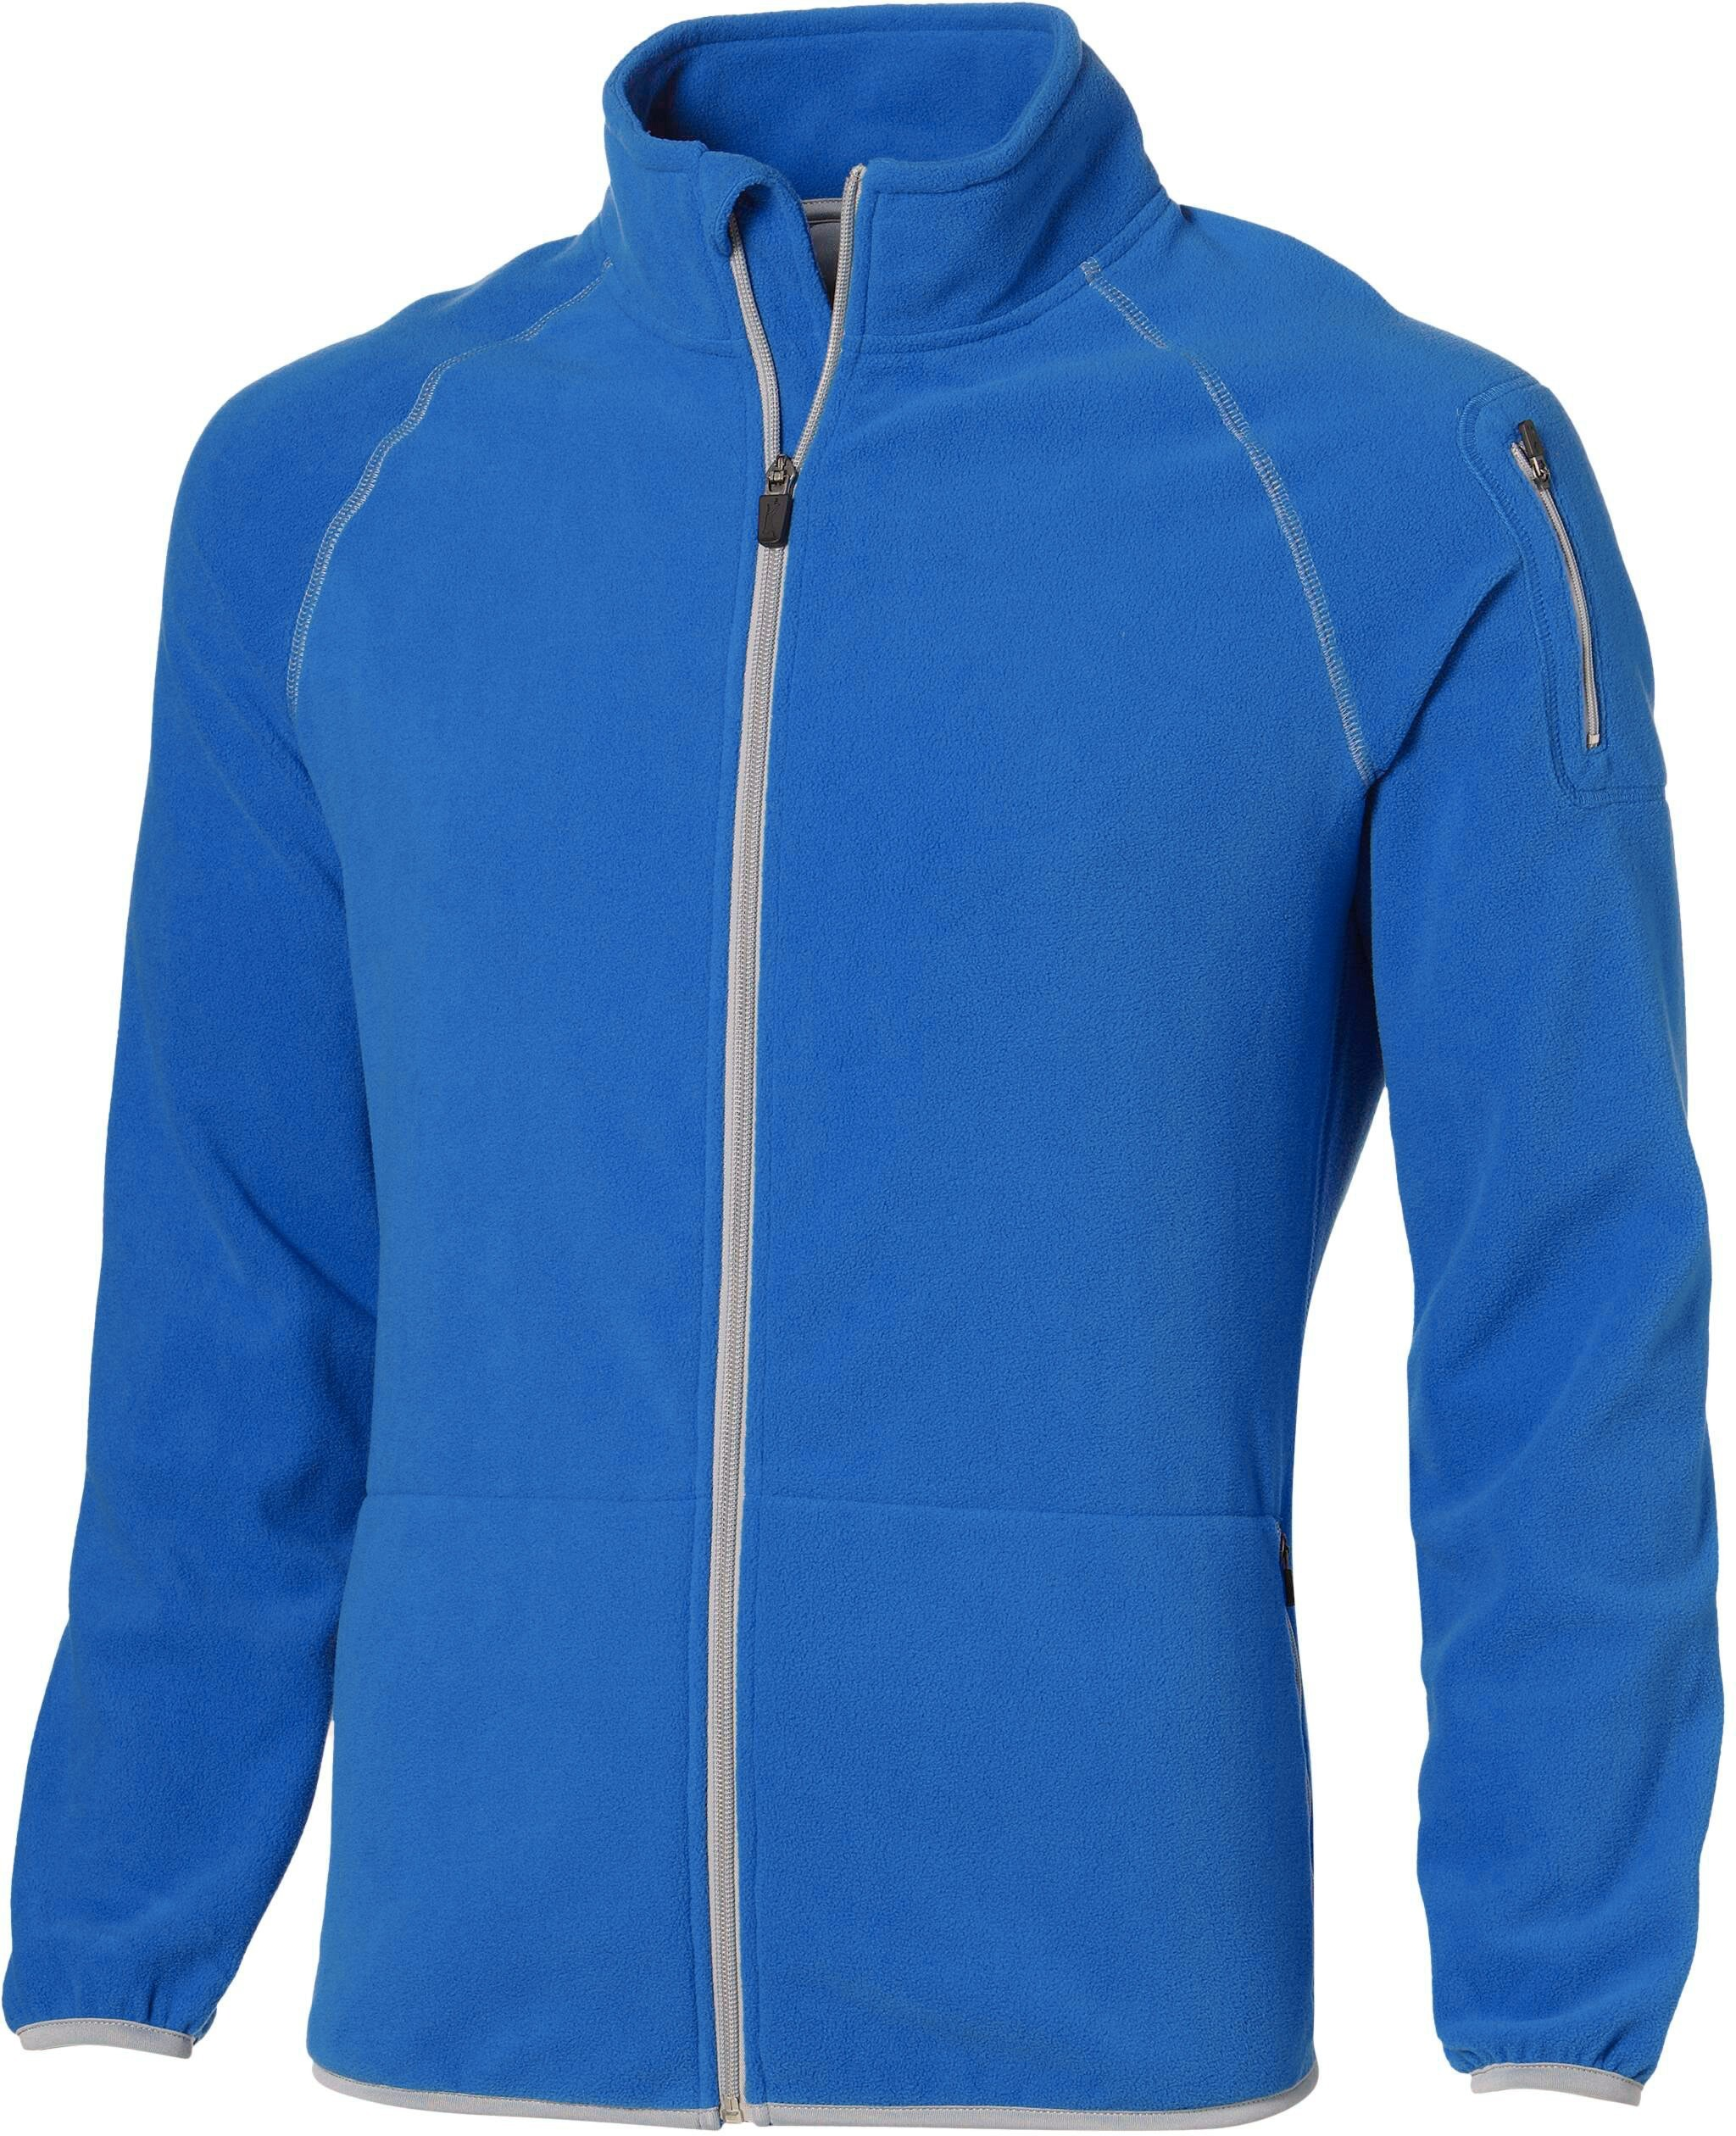 Slazenger Fleece Tops